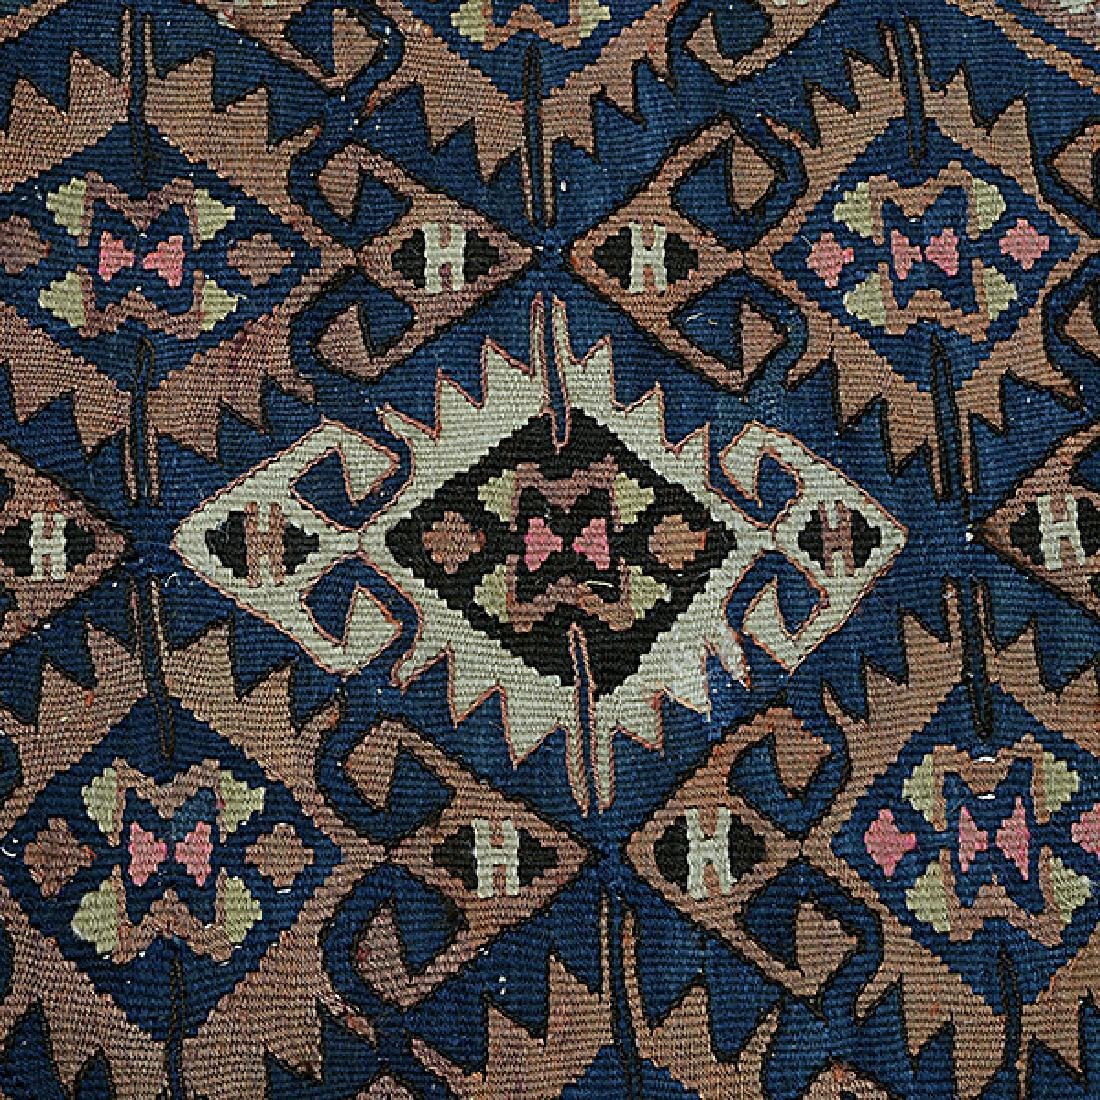 Qasqai Kilim Carpet: 4 feet 8 inches x 9 feet 11 inches - 2